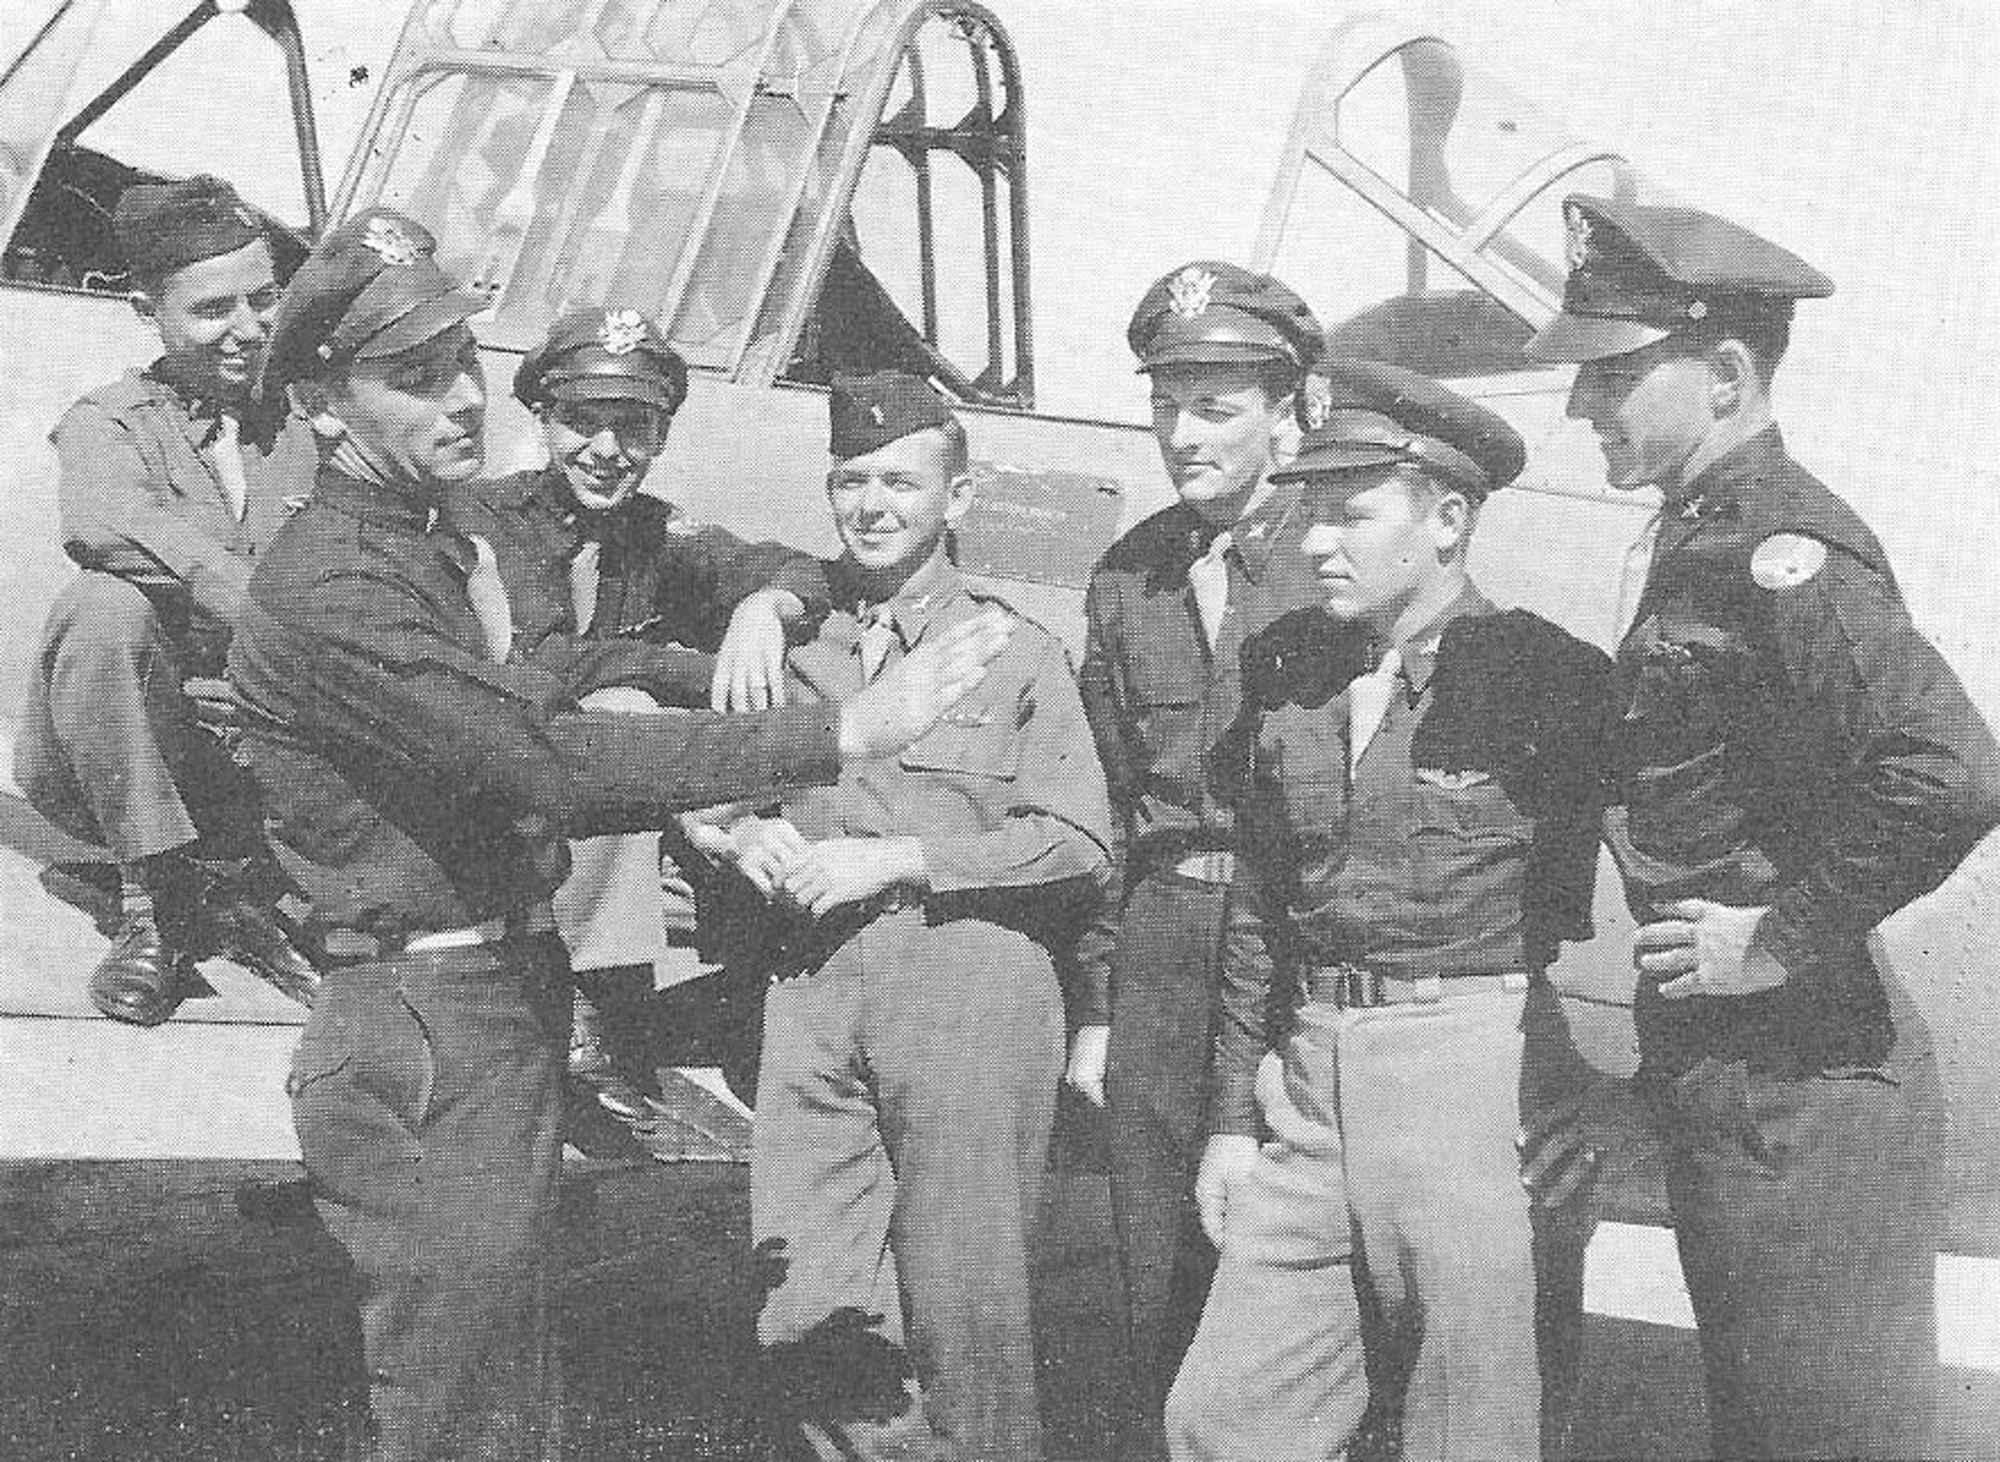 From left, Guy M. King, Clayton L. Berlinghoff, David G. Mullison, Irvin Croutherfield, Thomas E. Murray, J.M. Page, W. Laurent are seen in High Pitch magazine in 1943.